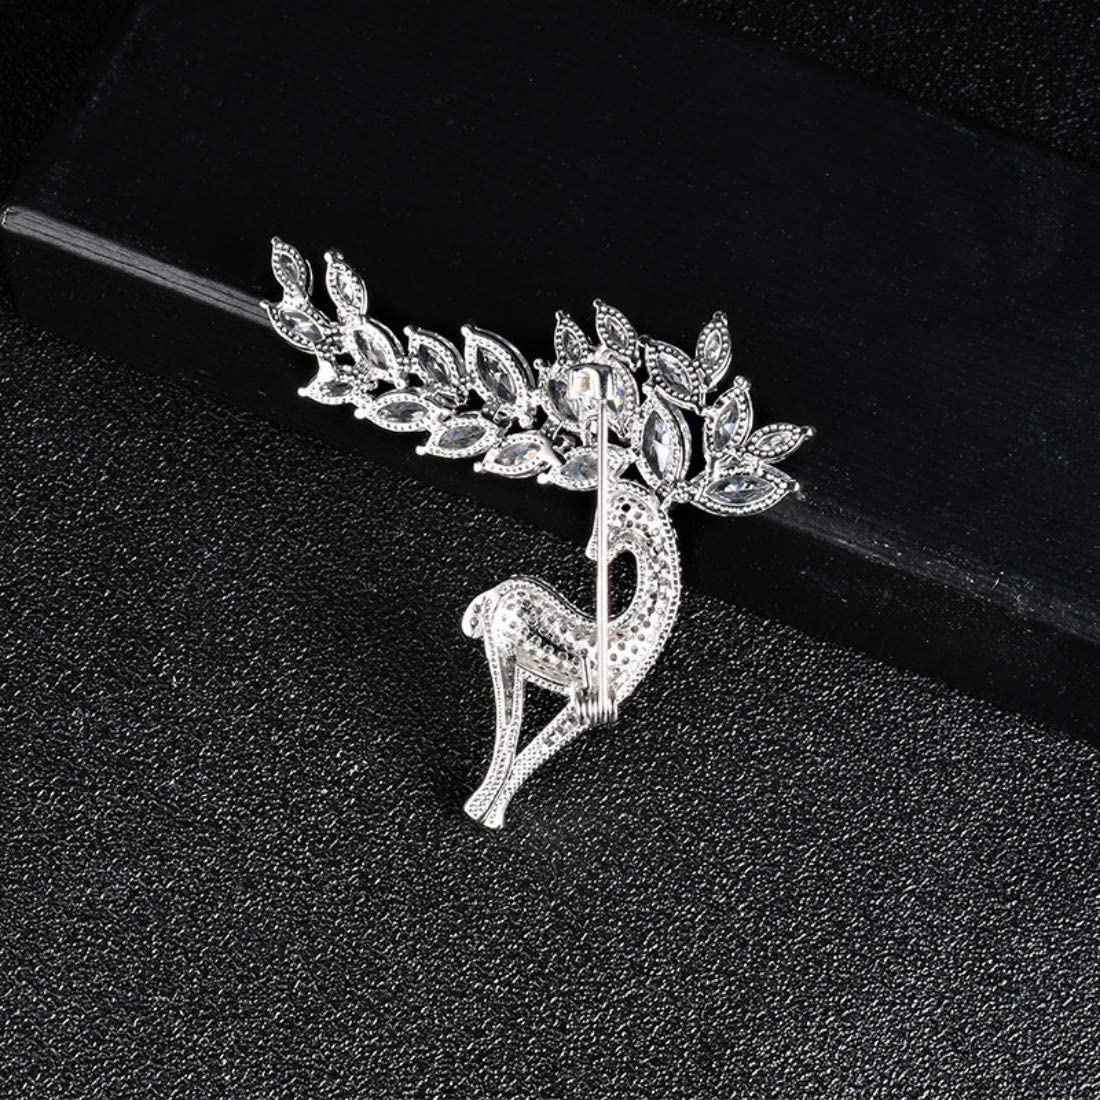 Creative Brooch Pin Ladies Brooch Zircon Fawn Styling Jewelry Dress Decoration Buckle High-end Jewelry Gift Badge Pin Lapel Pin